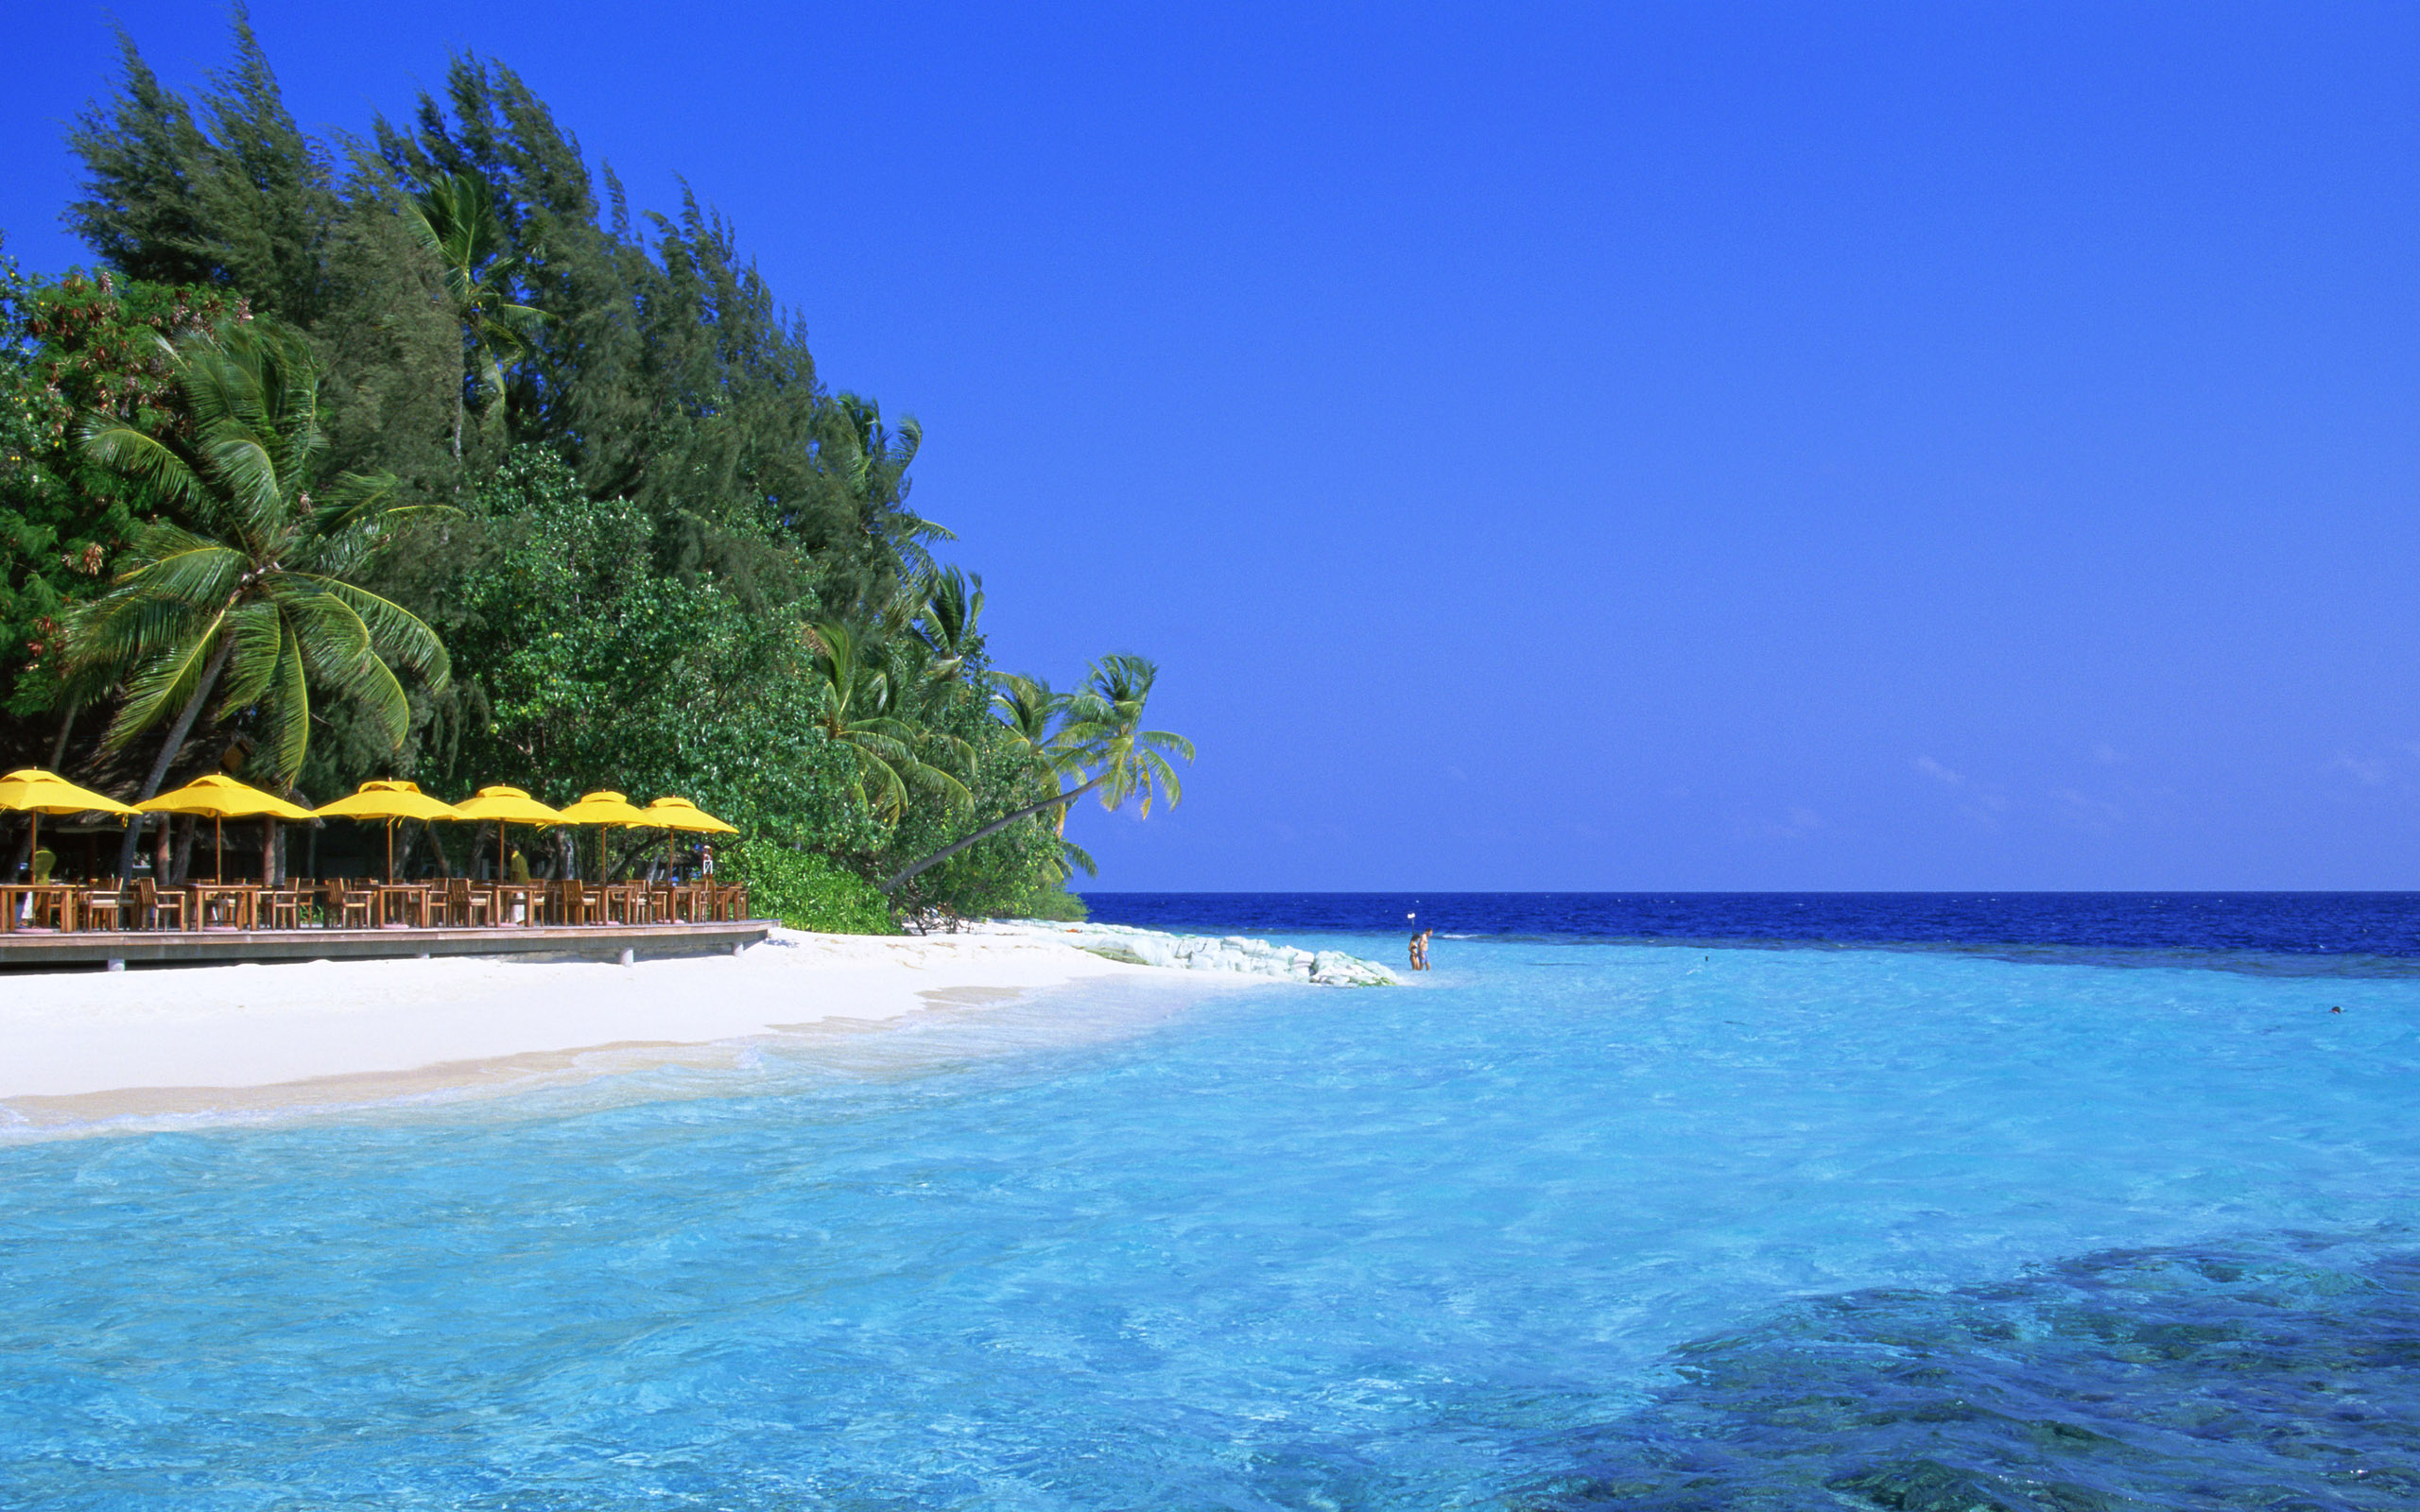 Blue Water Beach Wallpapers HD Wallpapers 2560x1600